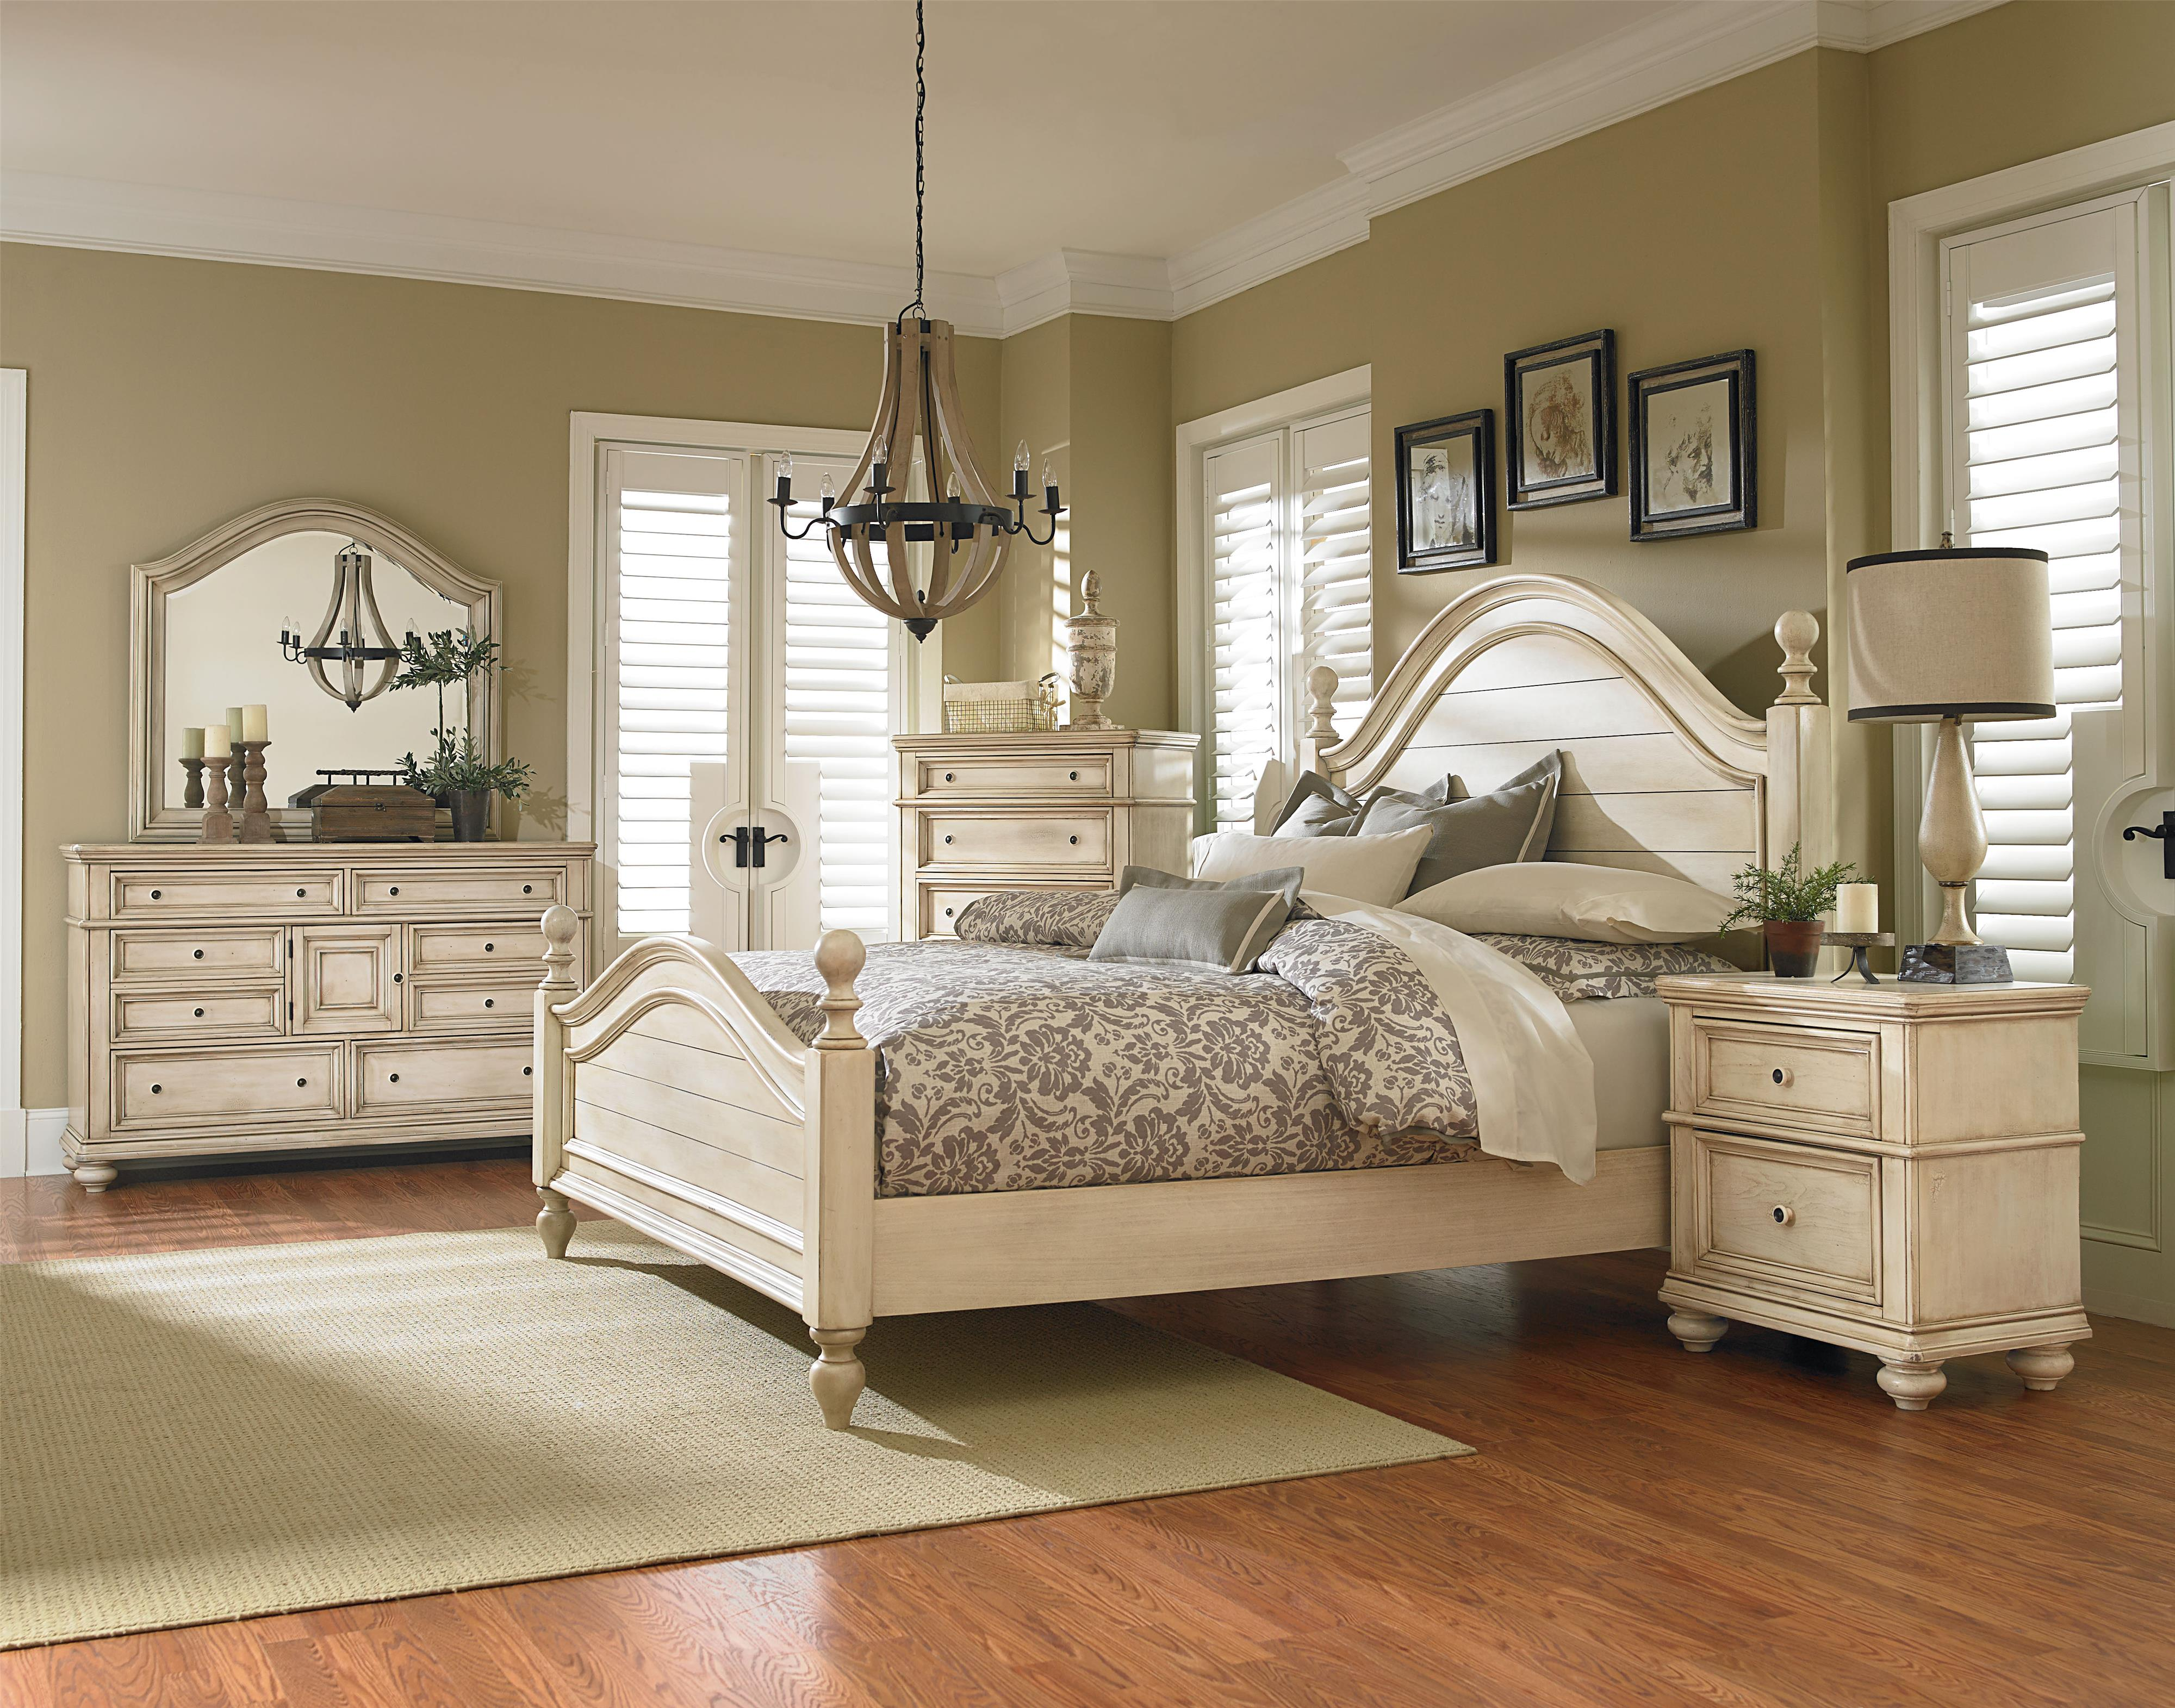 Standard Furniture Chateau Queen Bedroom Group Olinde 39 S Furniture Bedroom Group